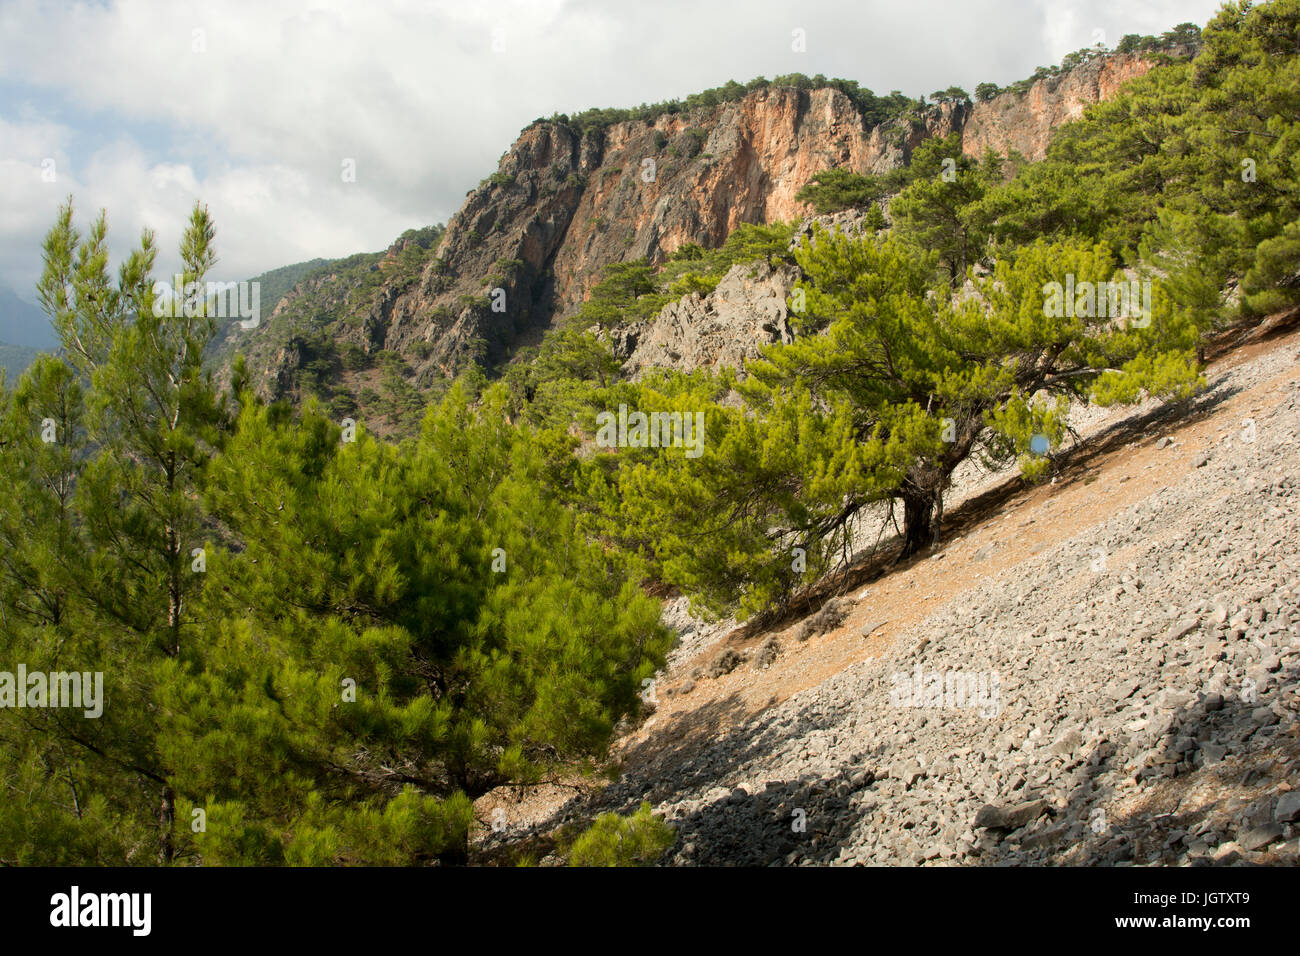 The Turkish Pine is growing around the Mediterranean Coast as here above the southwest coast of Crete. - Stock Image